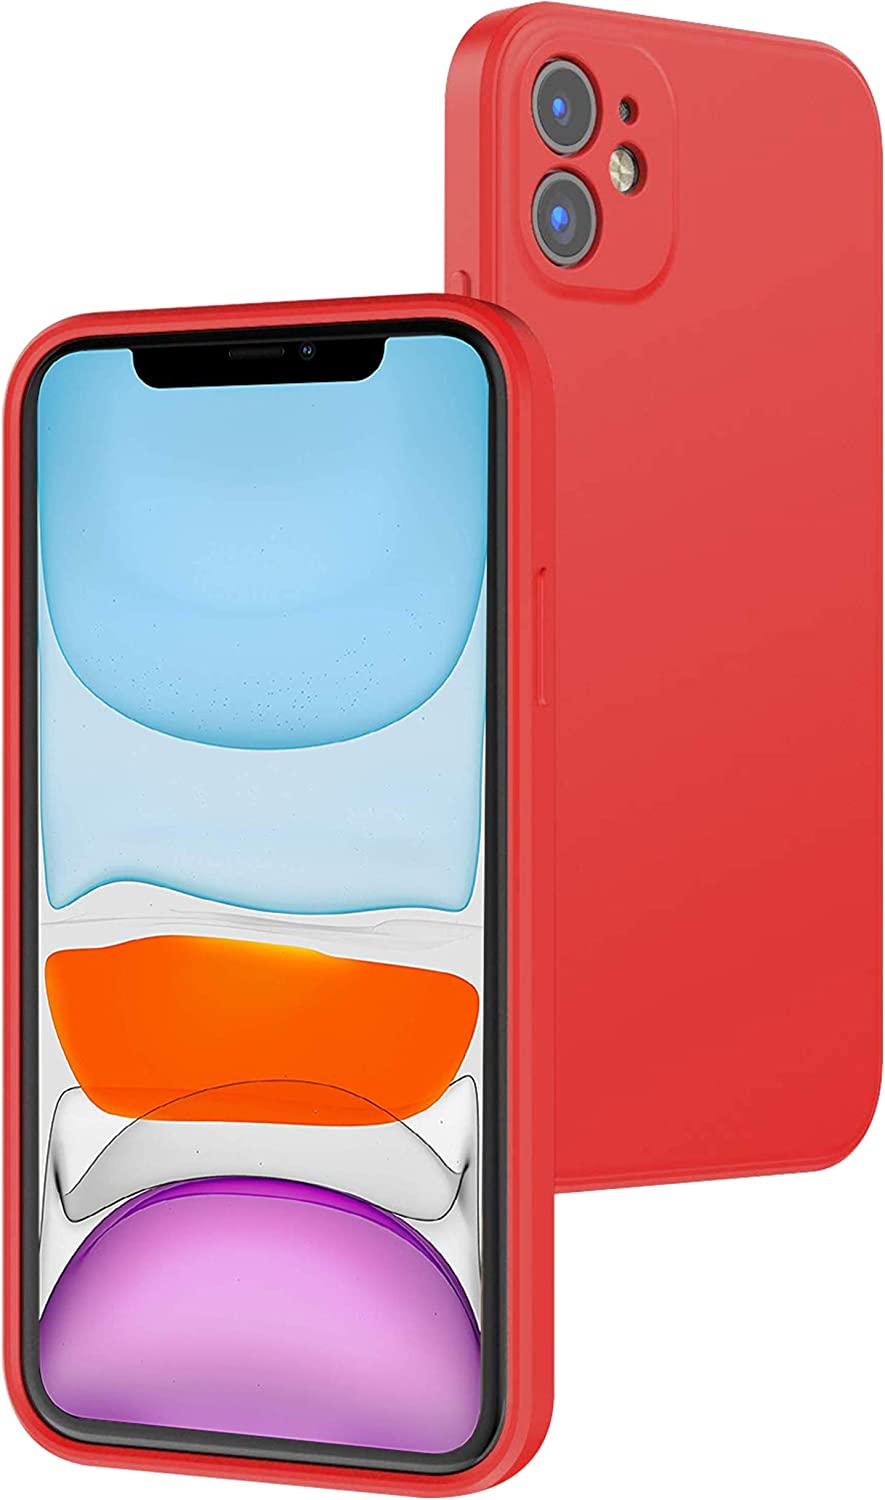 iPhone11 Case Compatible with iPhone 11 Cases 6.1 inch(2019), Soft Liquid Silicone Case with Microfiber Lining Phone Cover for iPhone11 (red)